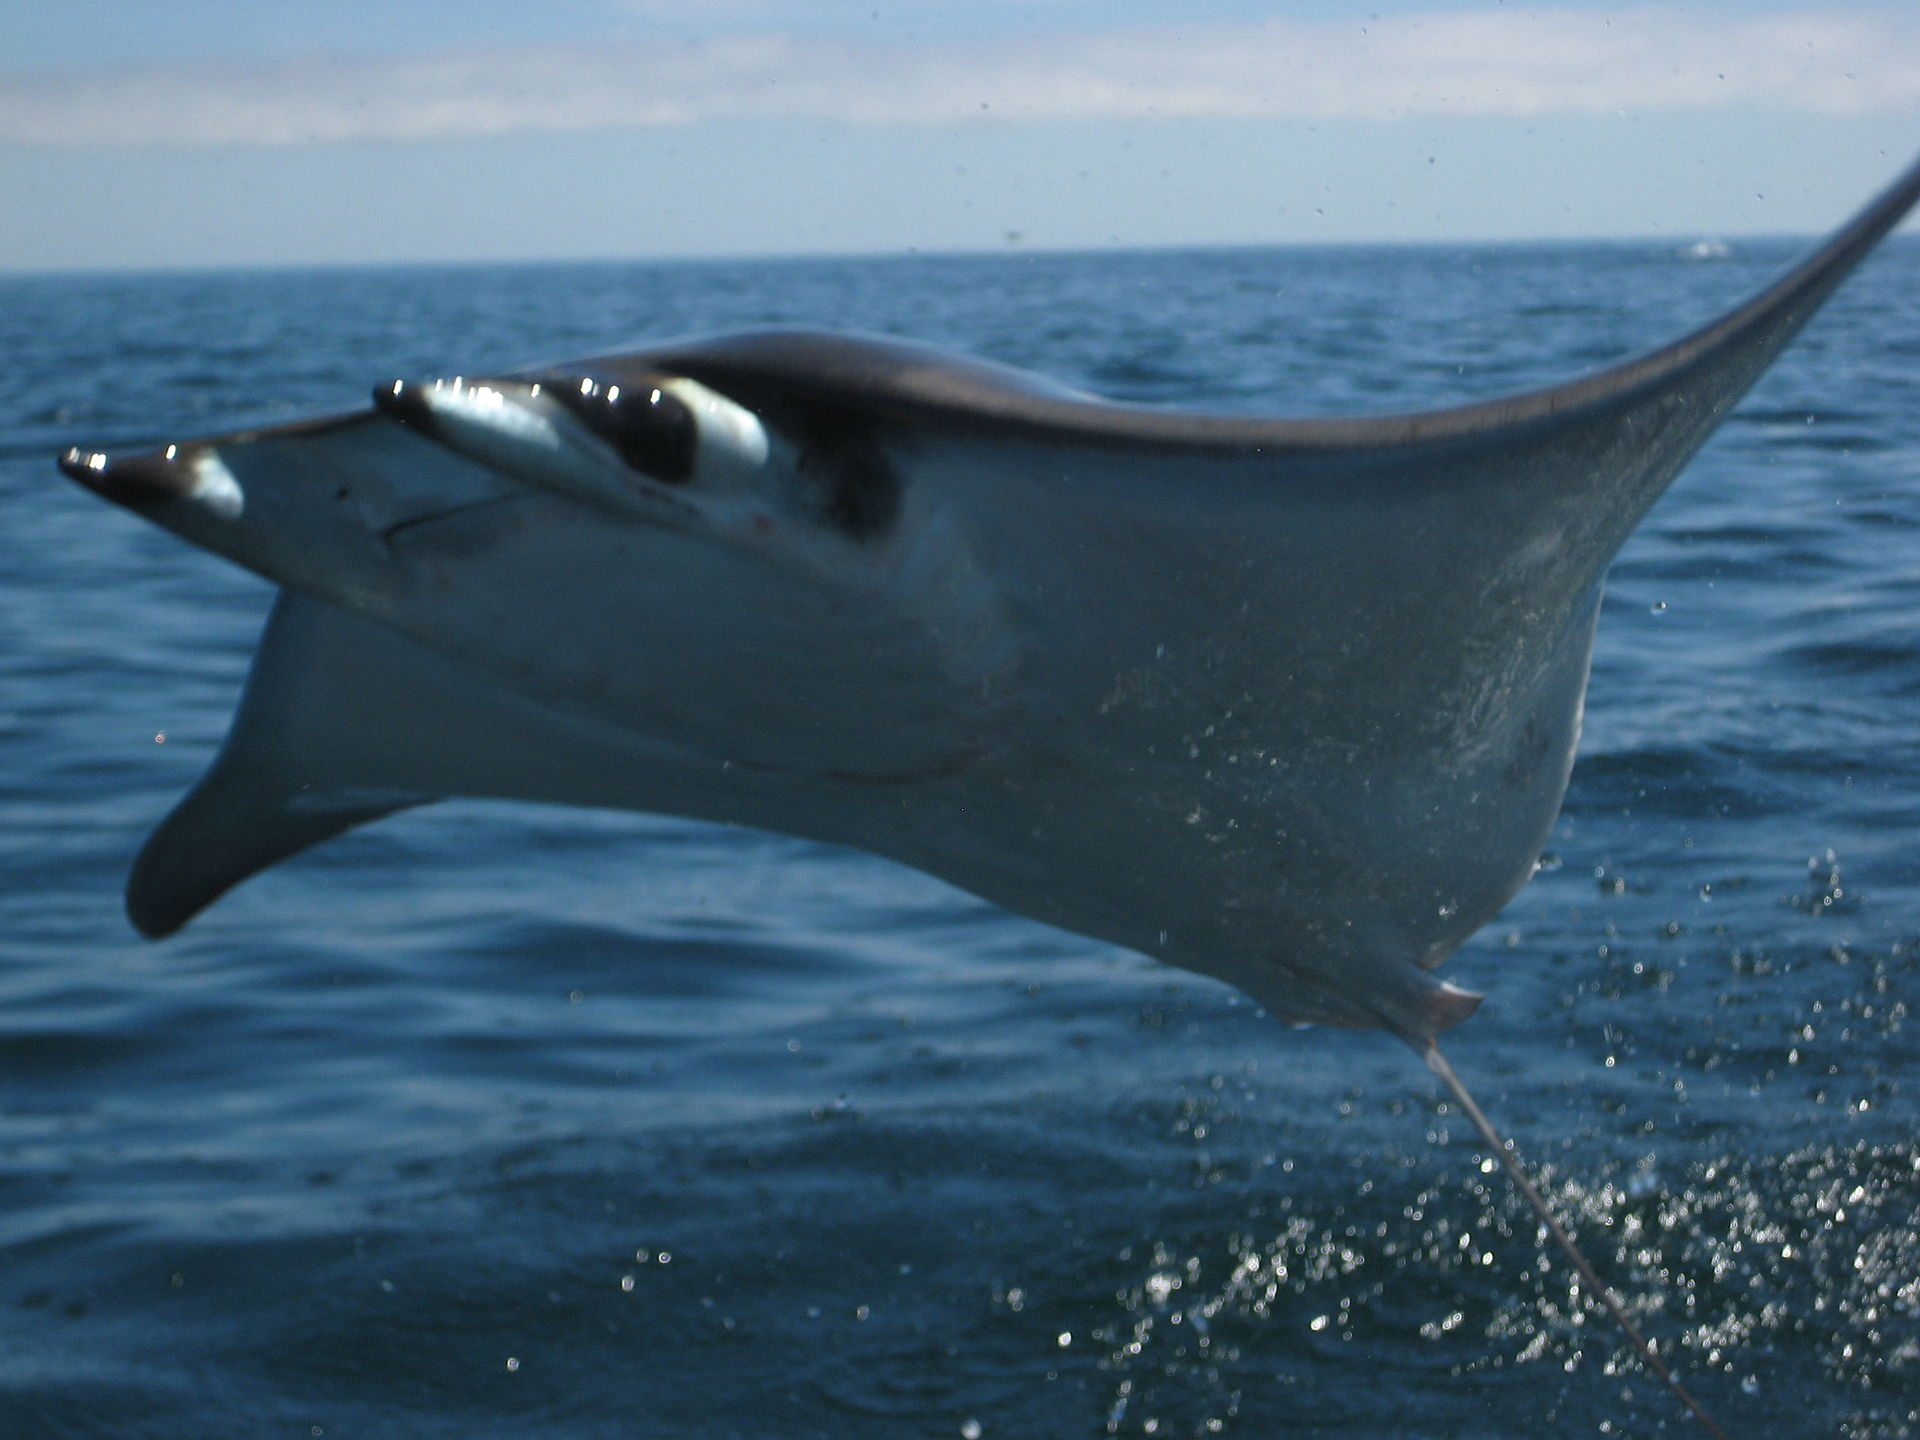 A mobula ray breaching. Image by Nick Bonzey from Corvallis, OR (Bat Rays catching some air) [CC BY-SA 2.0 (http://creativecommons.org/licenses/by-sa/2.0)], via Wikimedia Commons